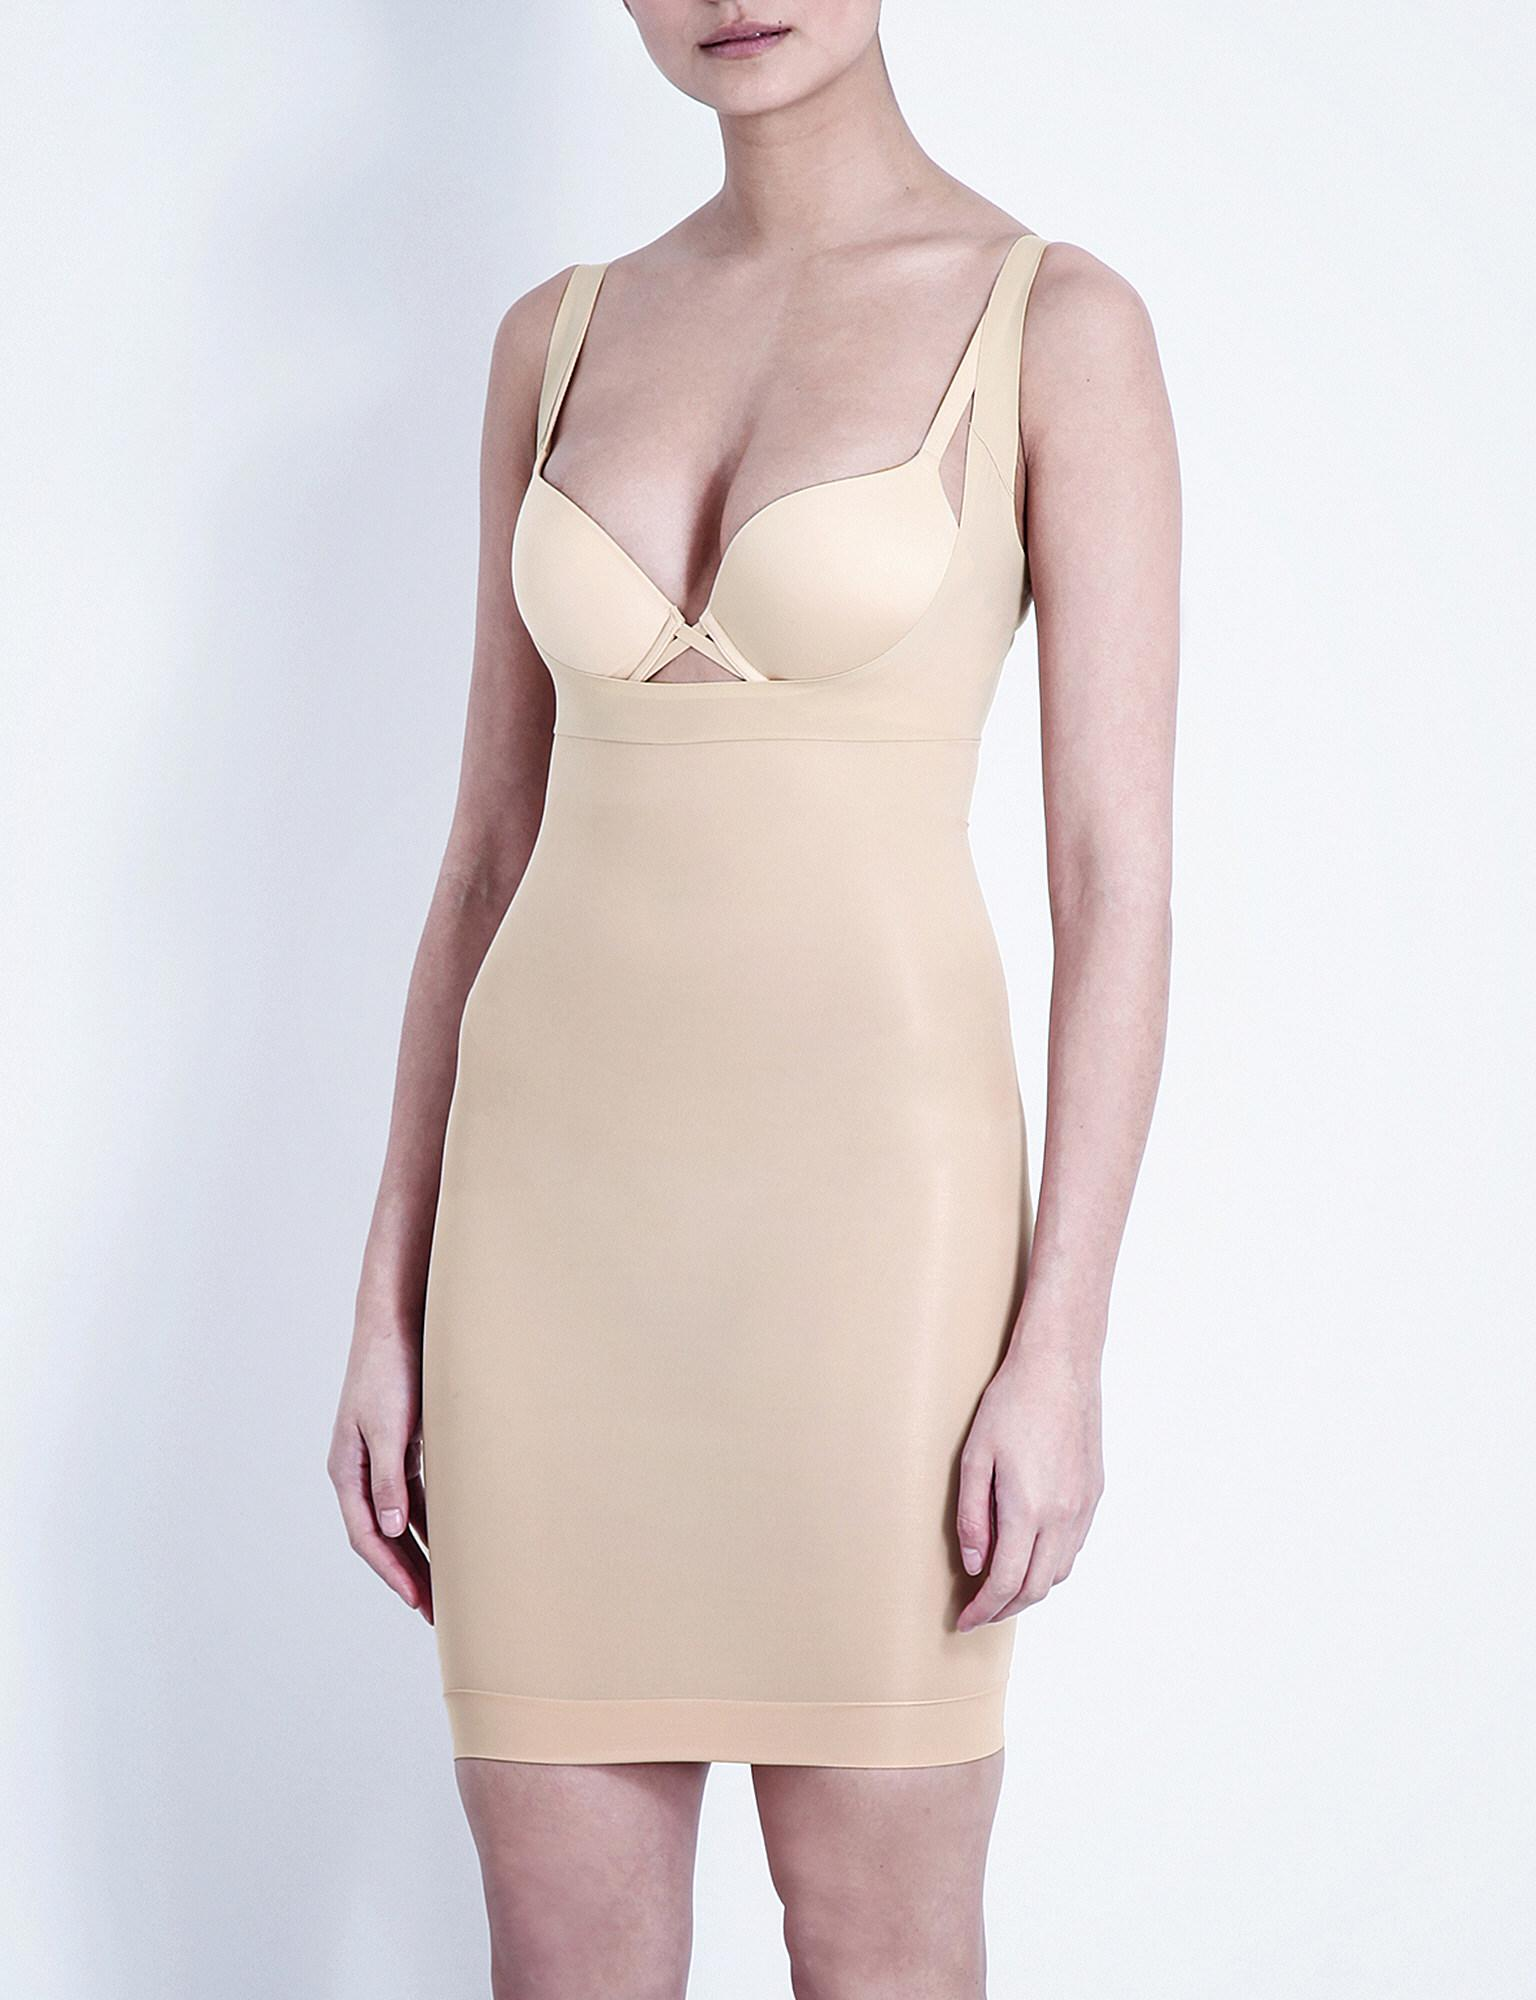 741457930246d Lyst - Spanx Shape My Day Open-bust Full Slip in Natural